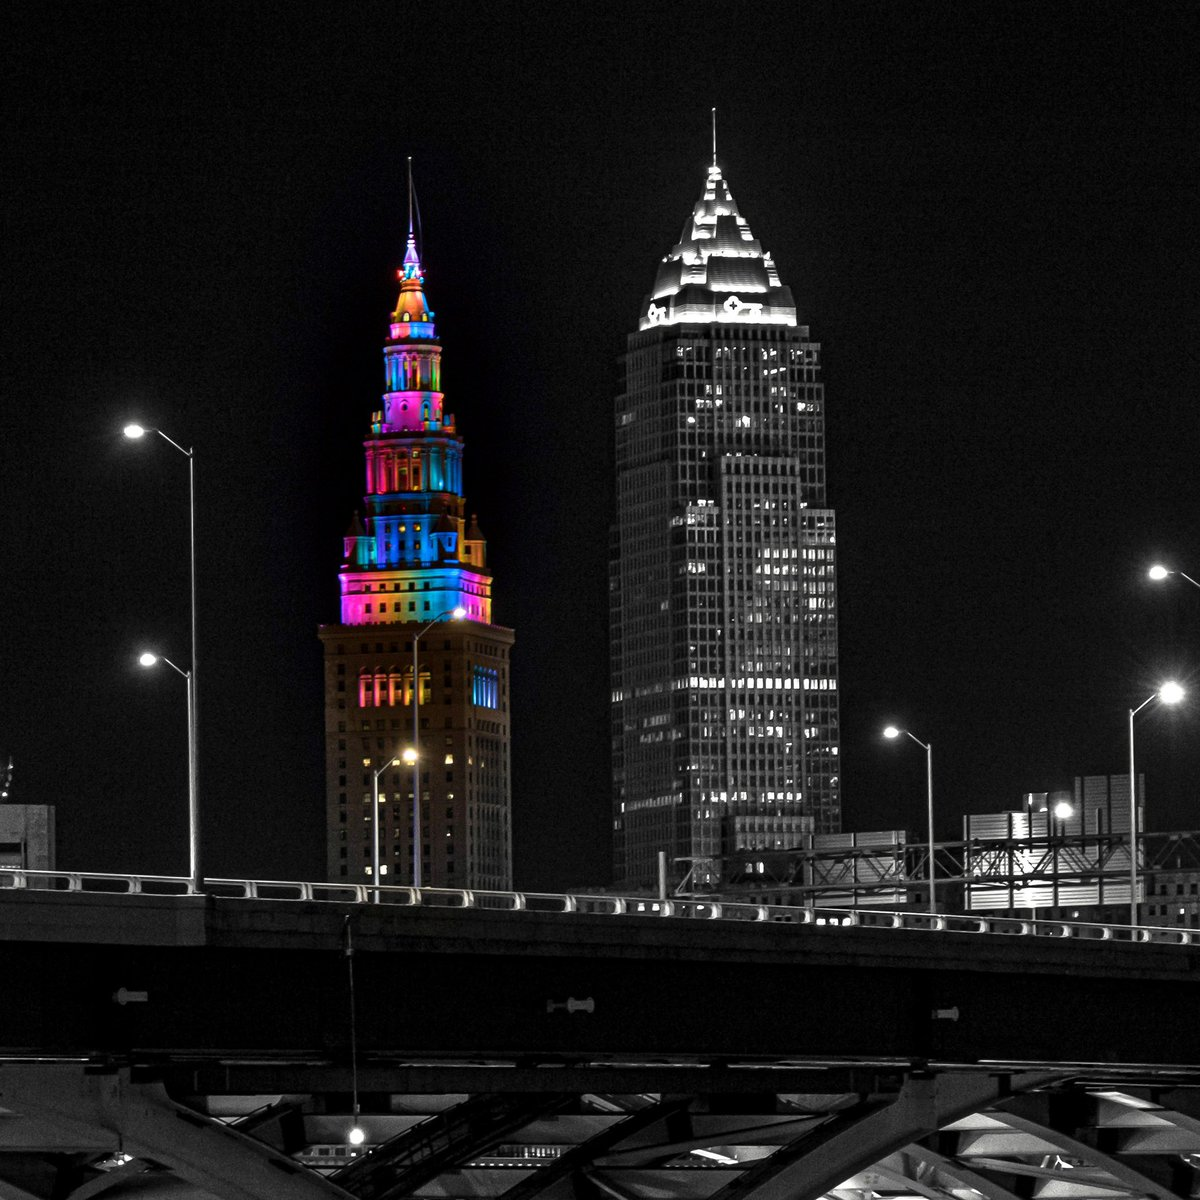 Color of CLE  🎨 #CLEinPhotos #thisisCLE #Cleveland #Ohio #theLand #inspiredbycleveland #cityscape #cityphotography #color #colorislife #selectivecolor #bnw #nightphotography #nightscape #citylights #pride #clevelandpride #teamCanon #swdfphotography  https://t.co/akvLcA5ykG…swd https://t.co/UMUDvJINJU